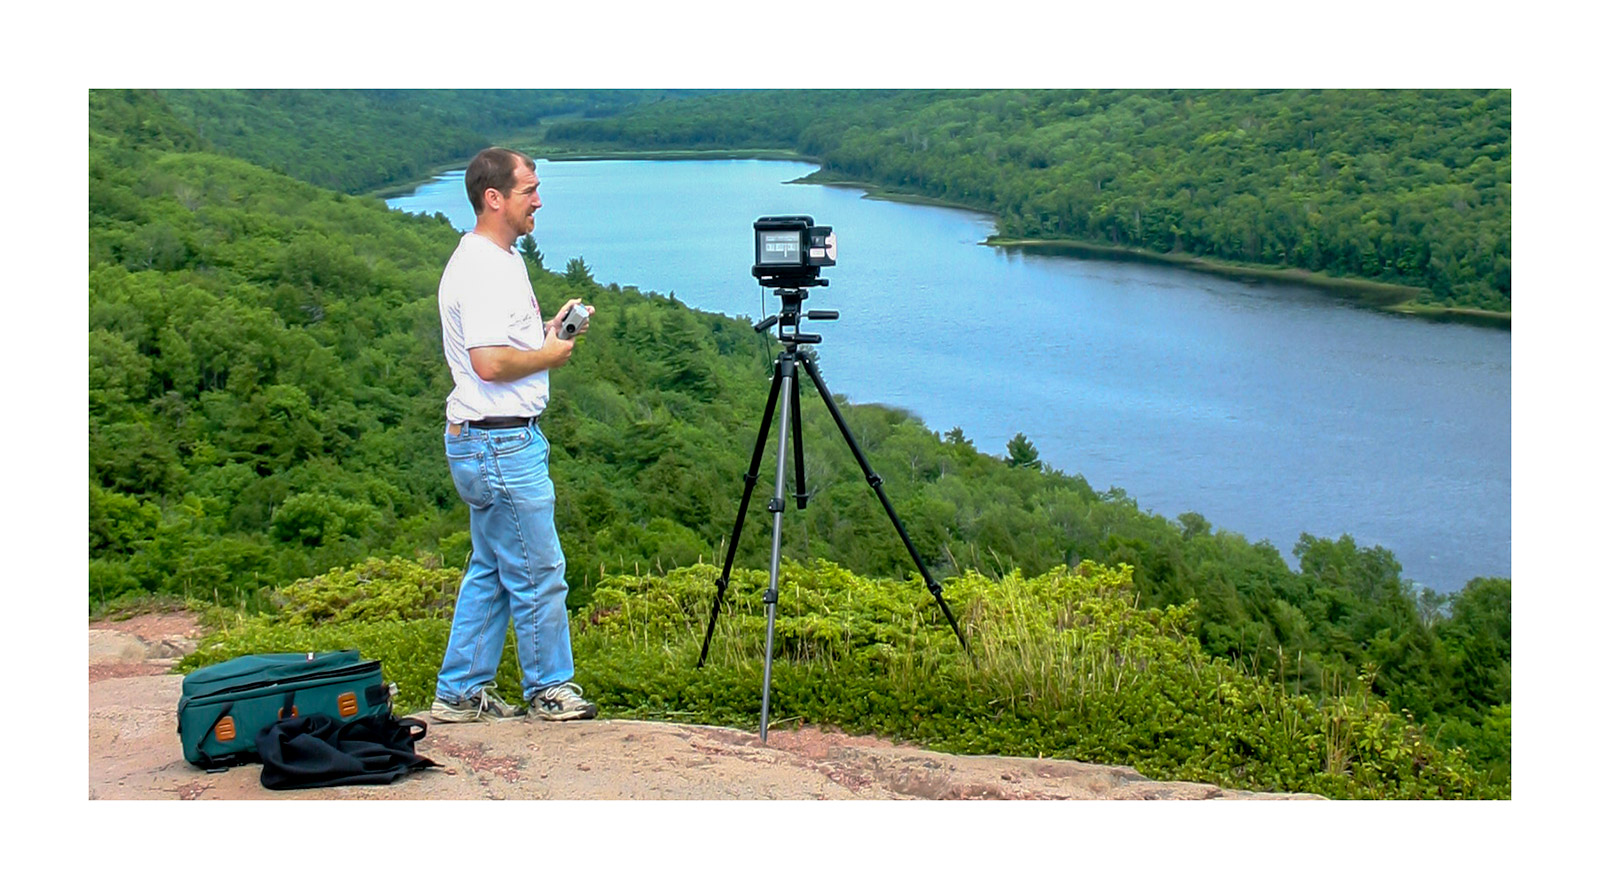 David using the Toyo 4x5 camera in 2005 at Lake of the Clouds, Porcupine Mountains Wilderness State Park, Michigan